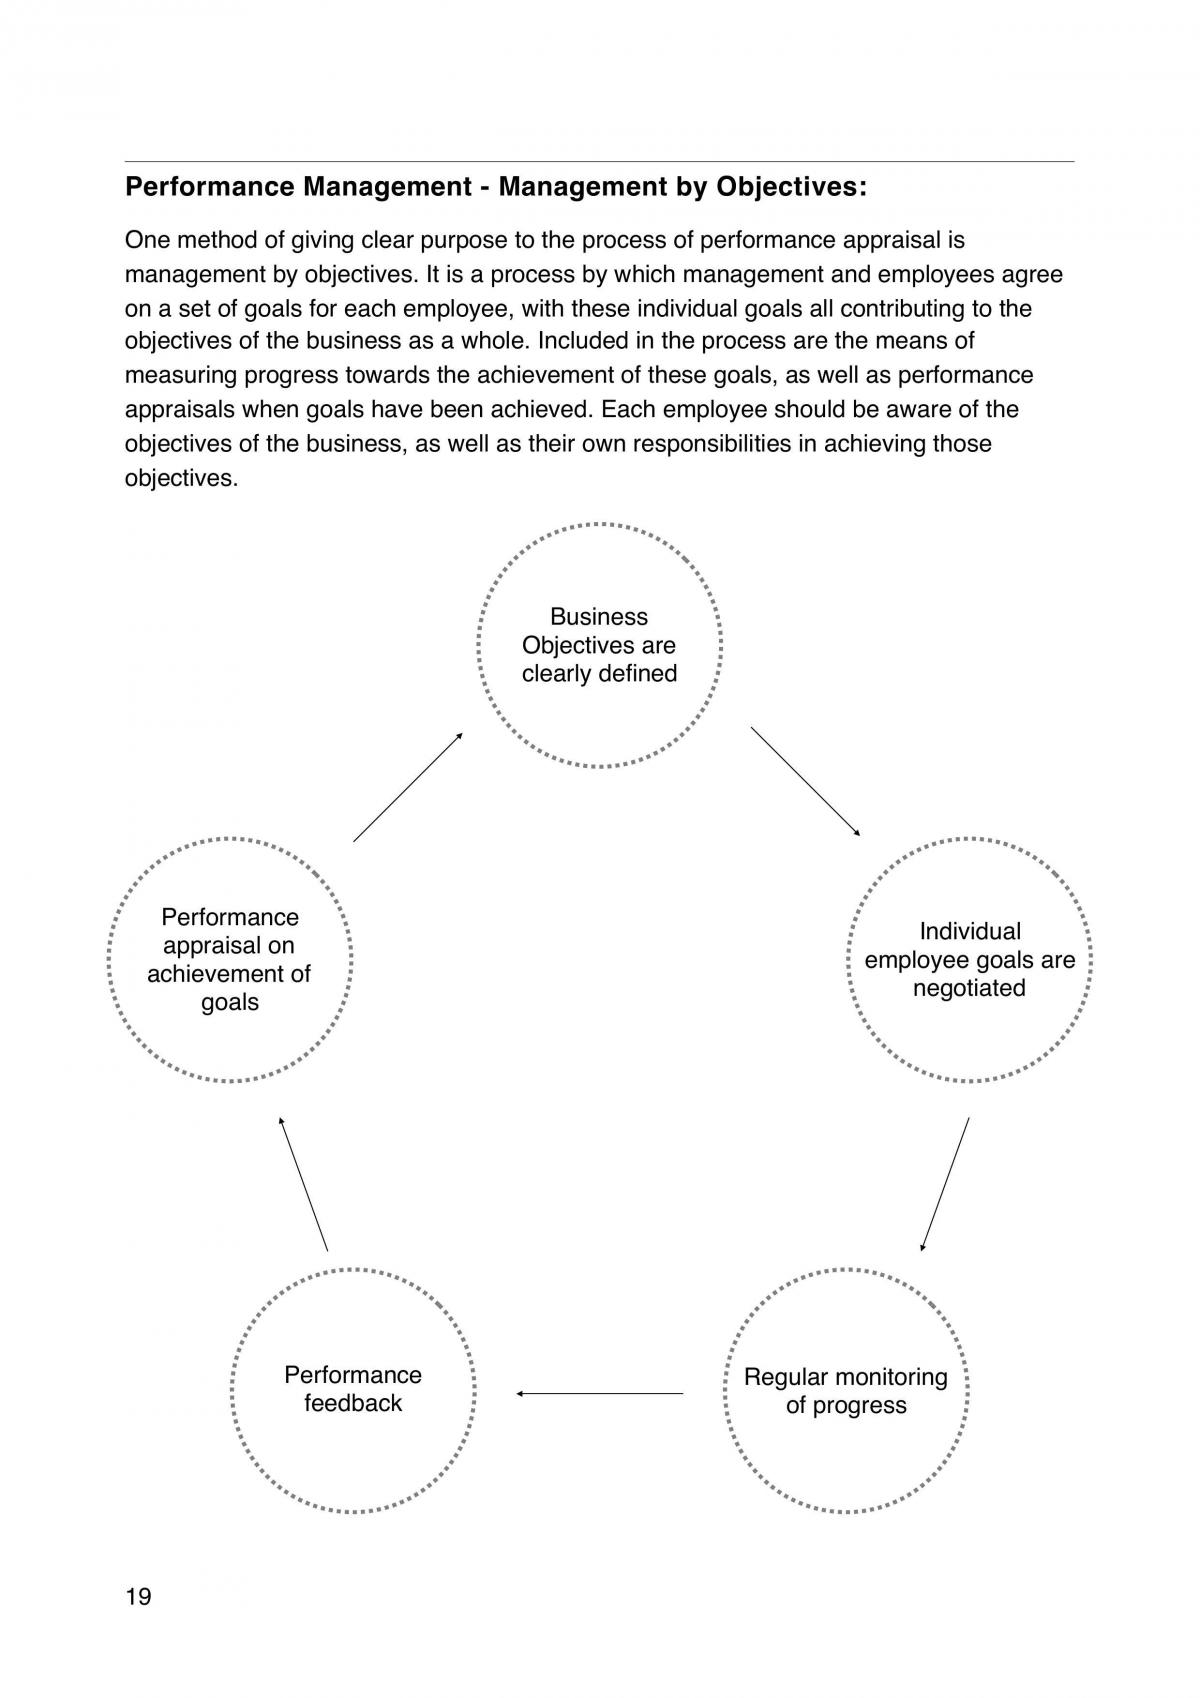 MGT1FOX - Foundation of Management notes - Page 19